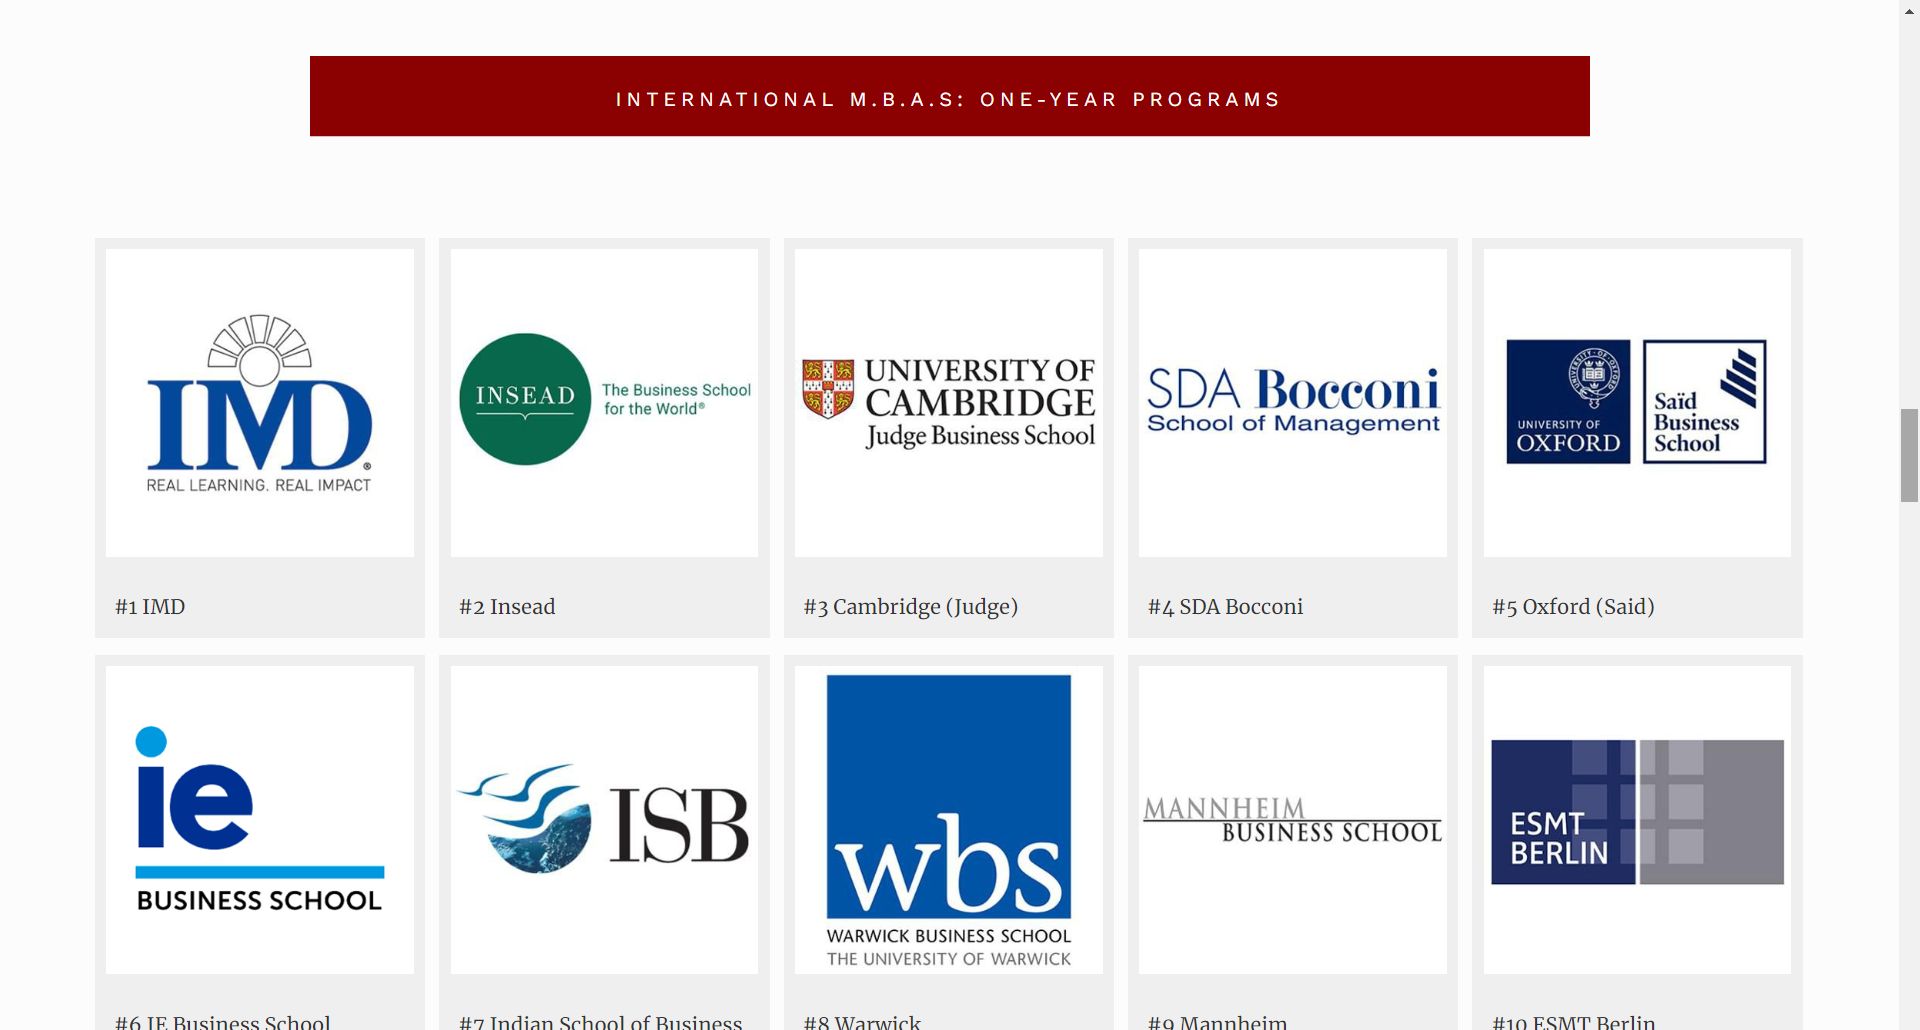 Forbes-2019-international-1-year-programs.png